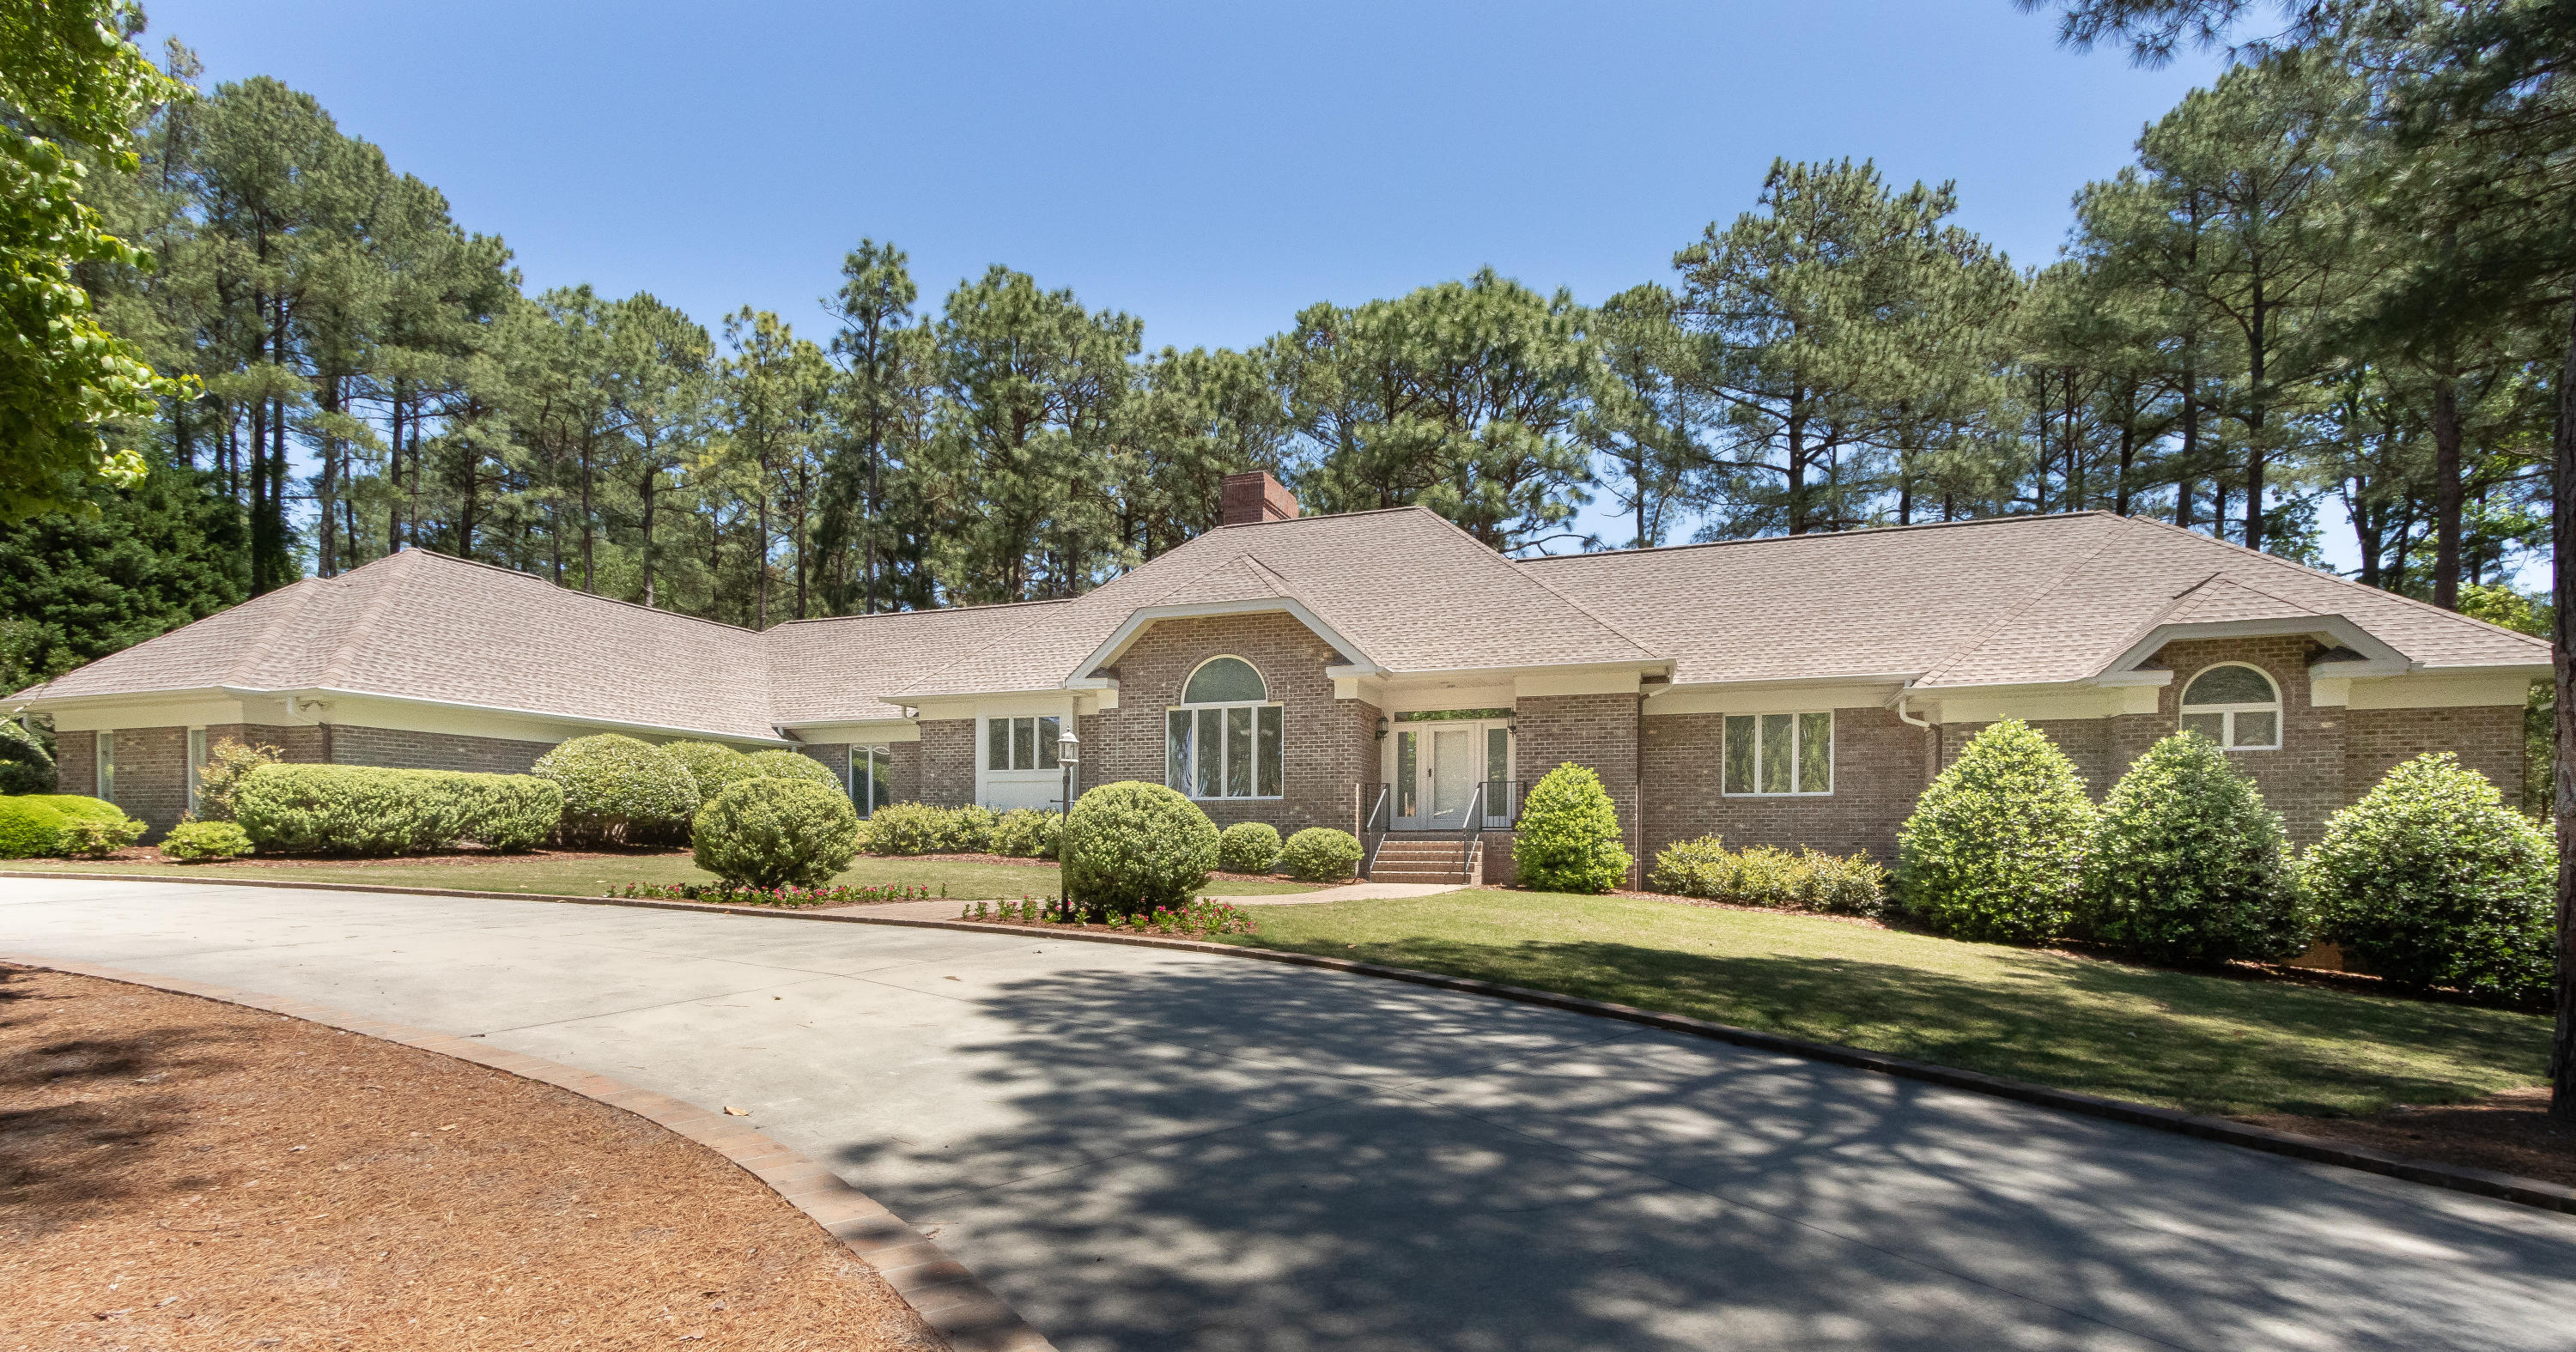 11  Mcmichael Drive, Pinehurst in Moore County, NC 28374 Home for Sale